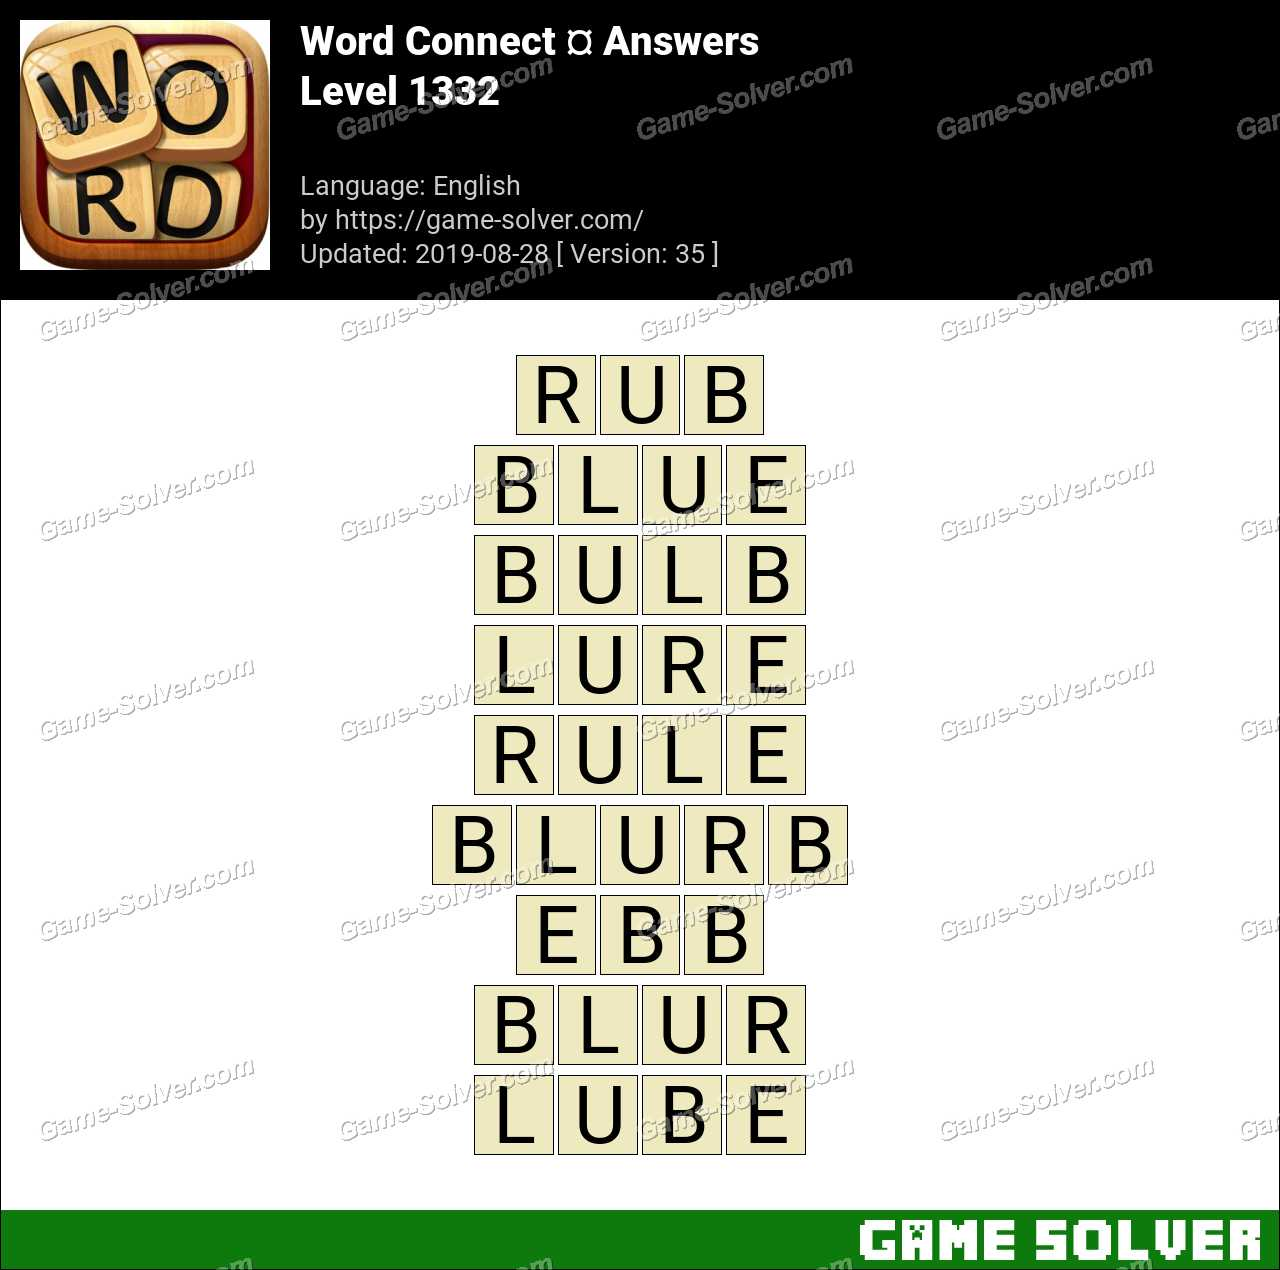 Word Connect Level 1332 Answers